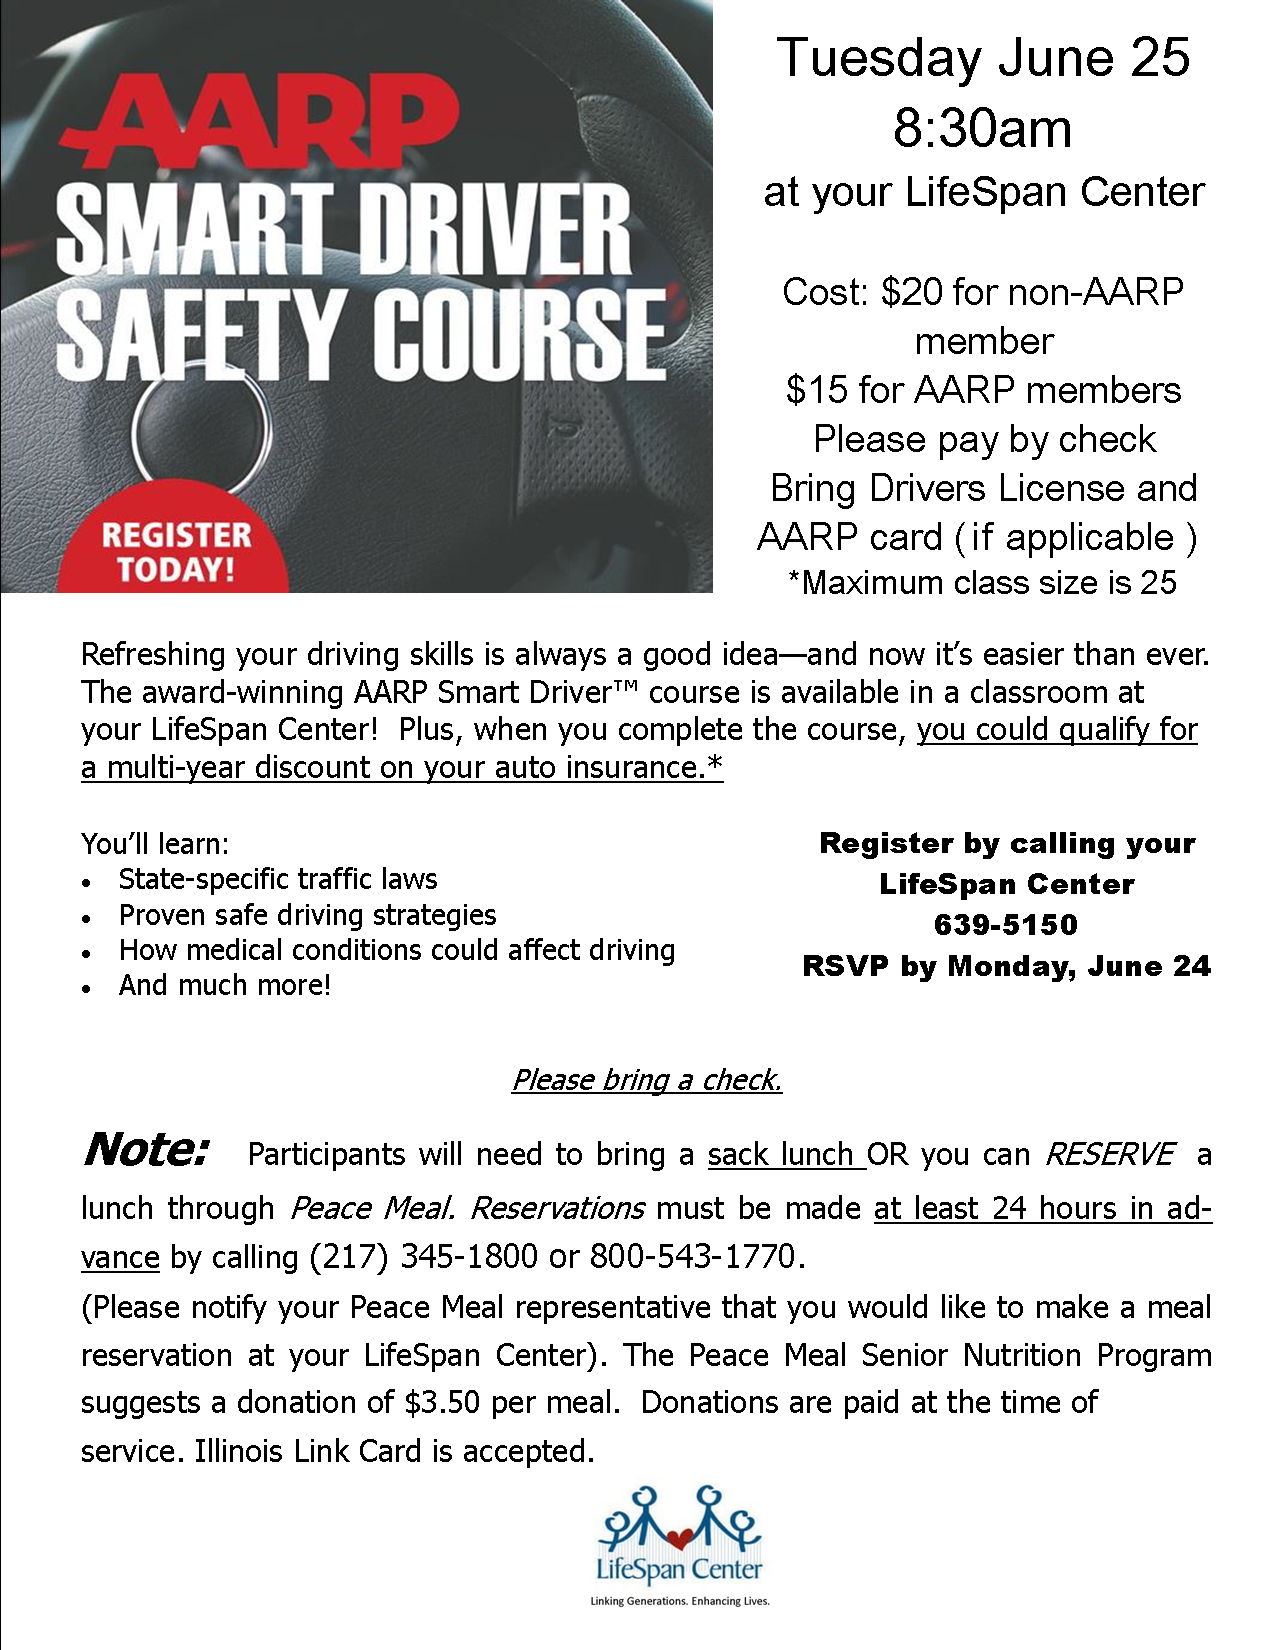 AARP_Smart_Driver_course29742.png